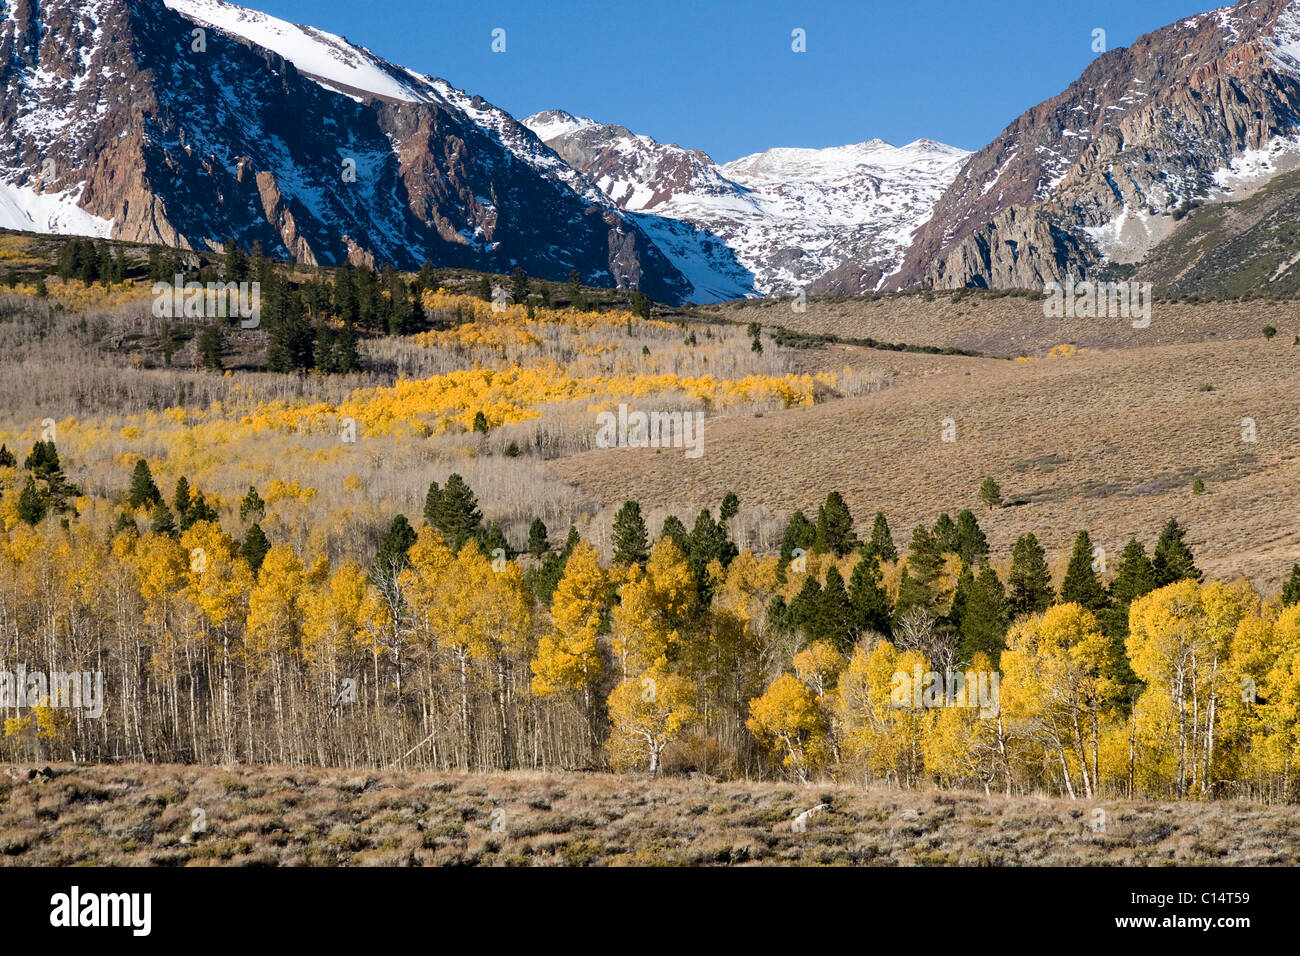 A landscape with autumn leaves, a snow covered mountain, and aspen trees in the Sierra mountains near Lee Vining, - Stock Image